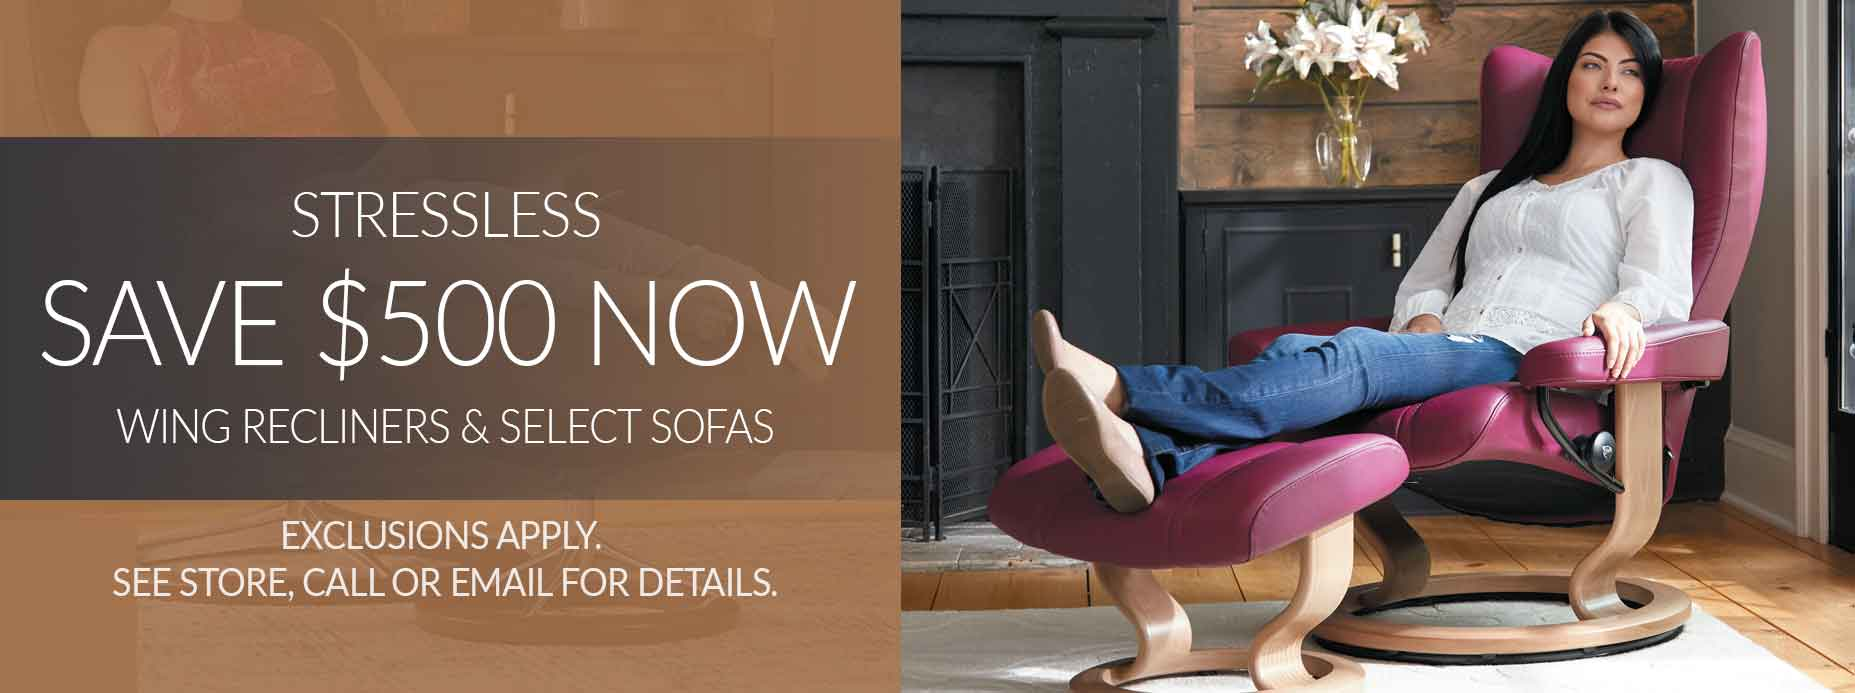 Stressless $500 off Wing Recliners & 25% off select sofas